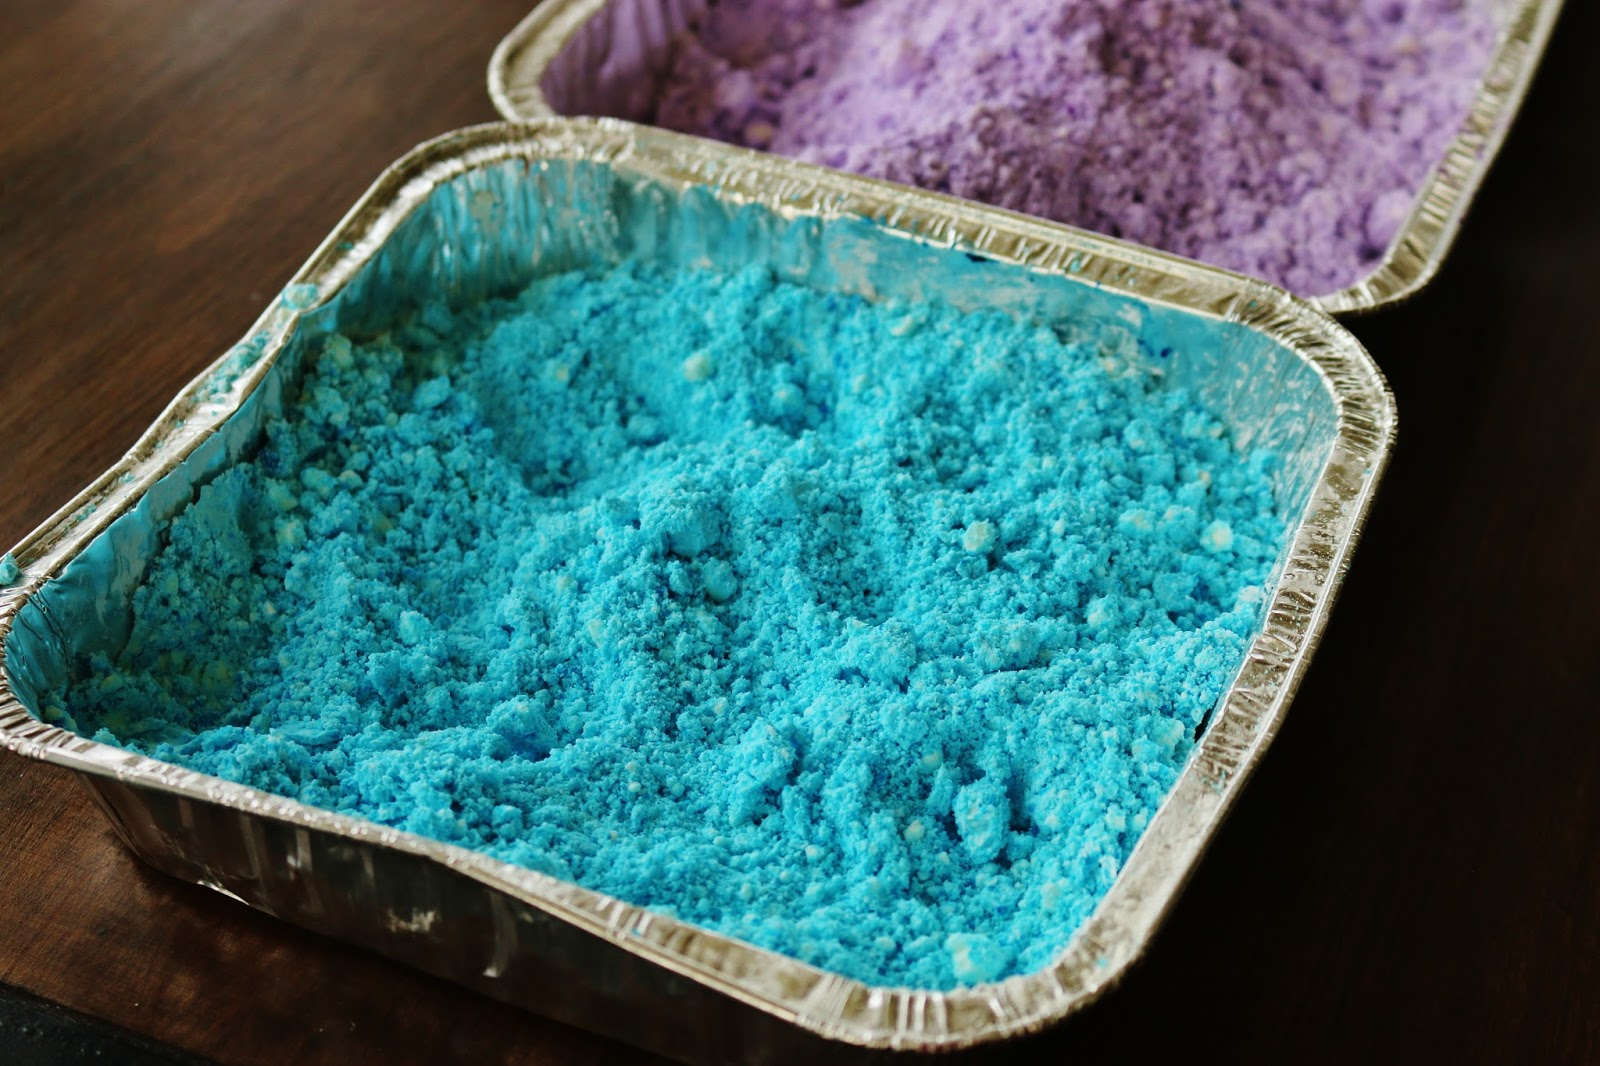 My Simple Modest Chic Diy Color Powder For A Color Fight